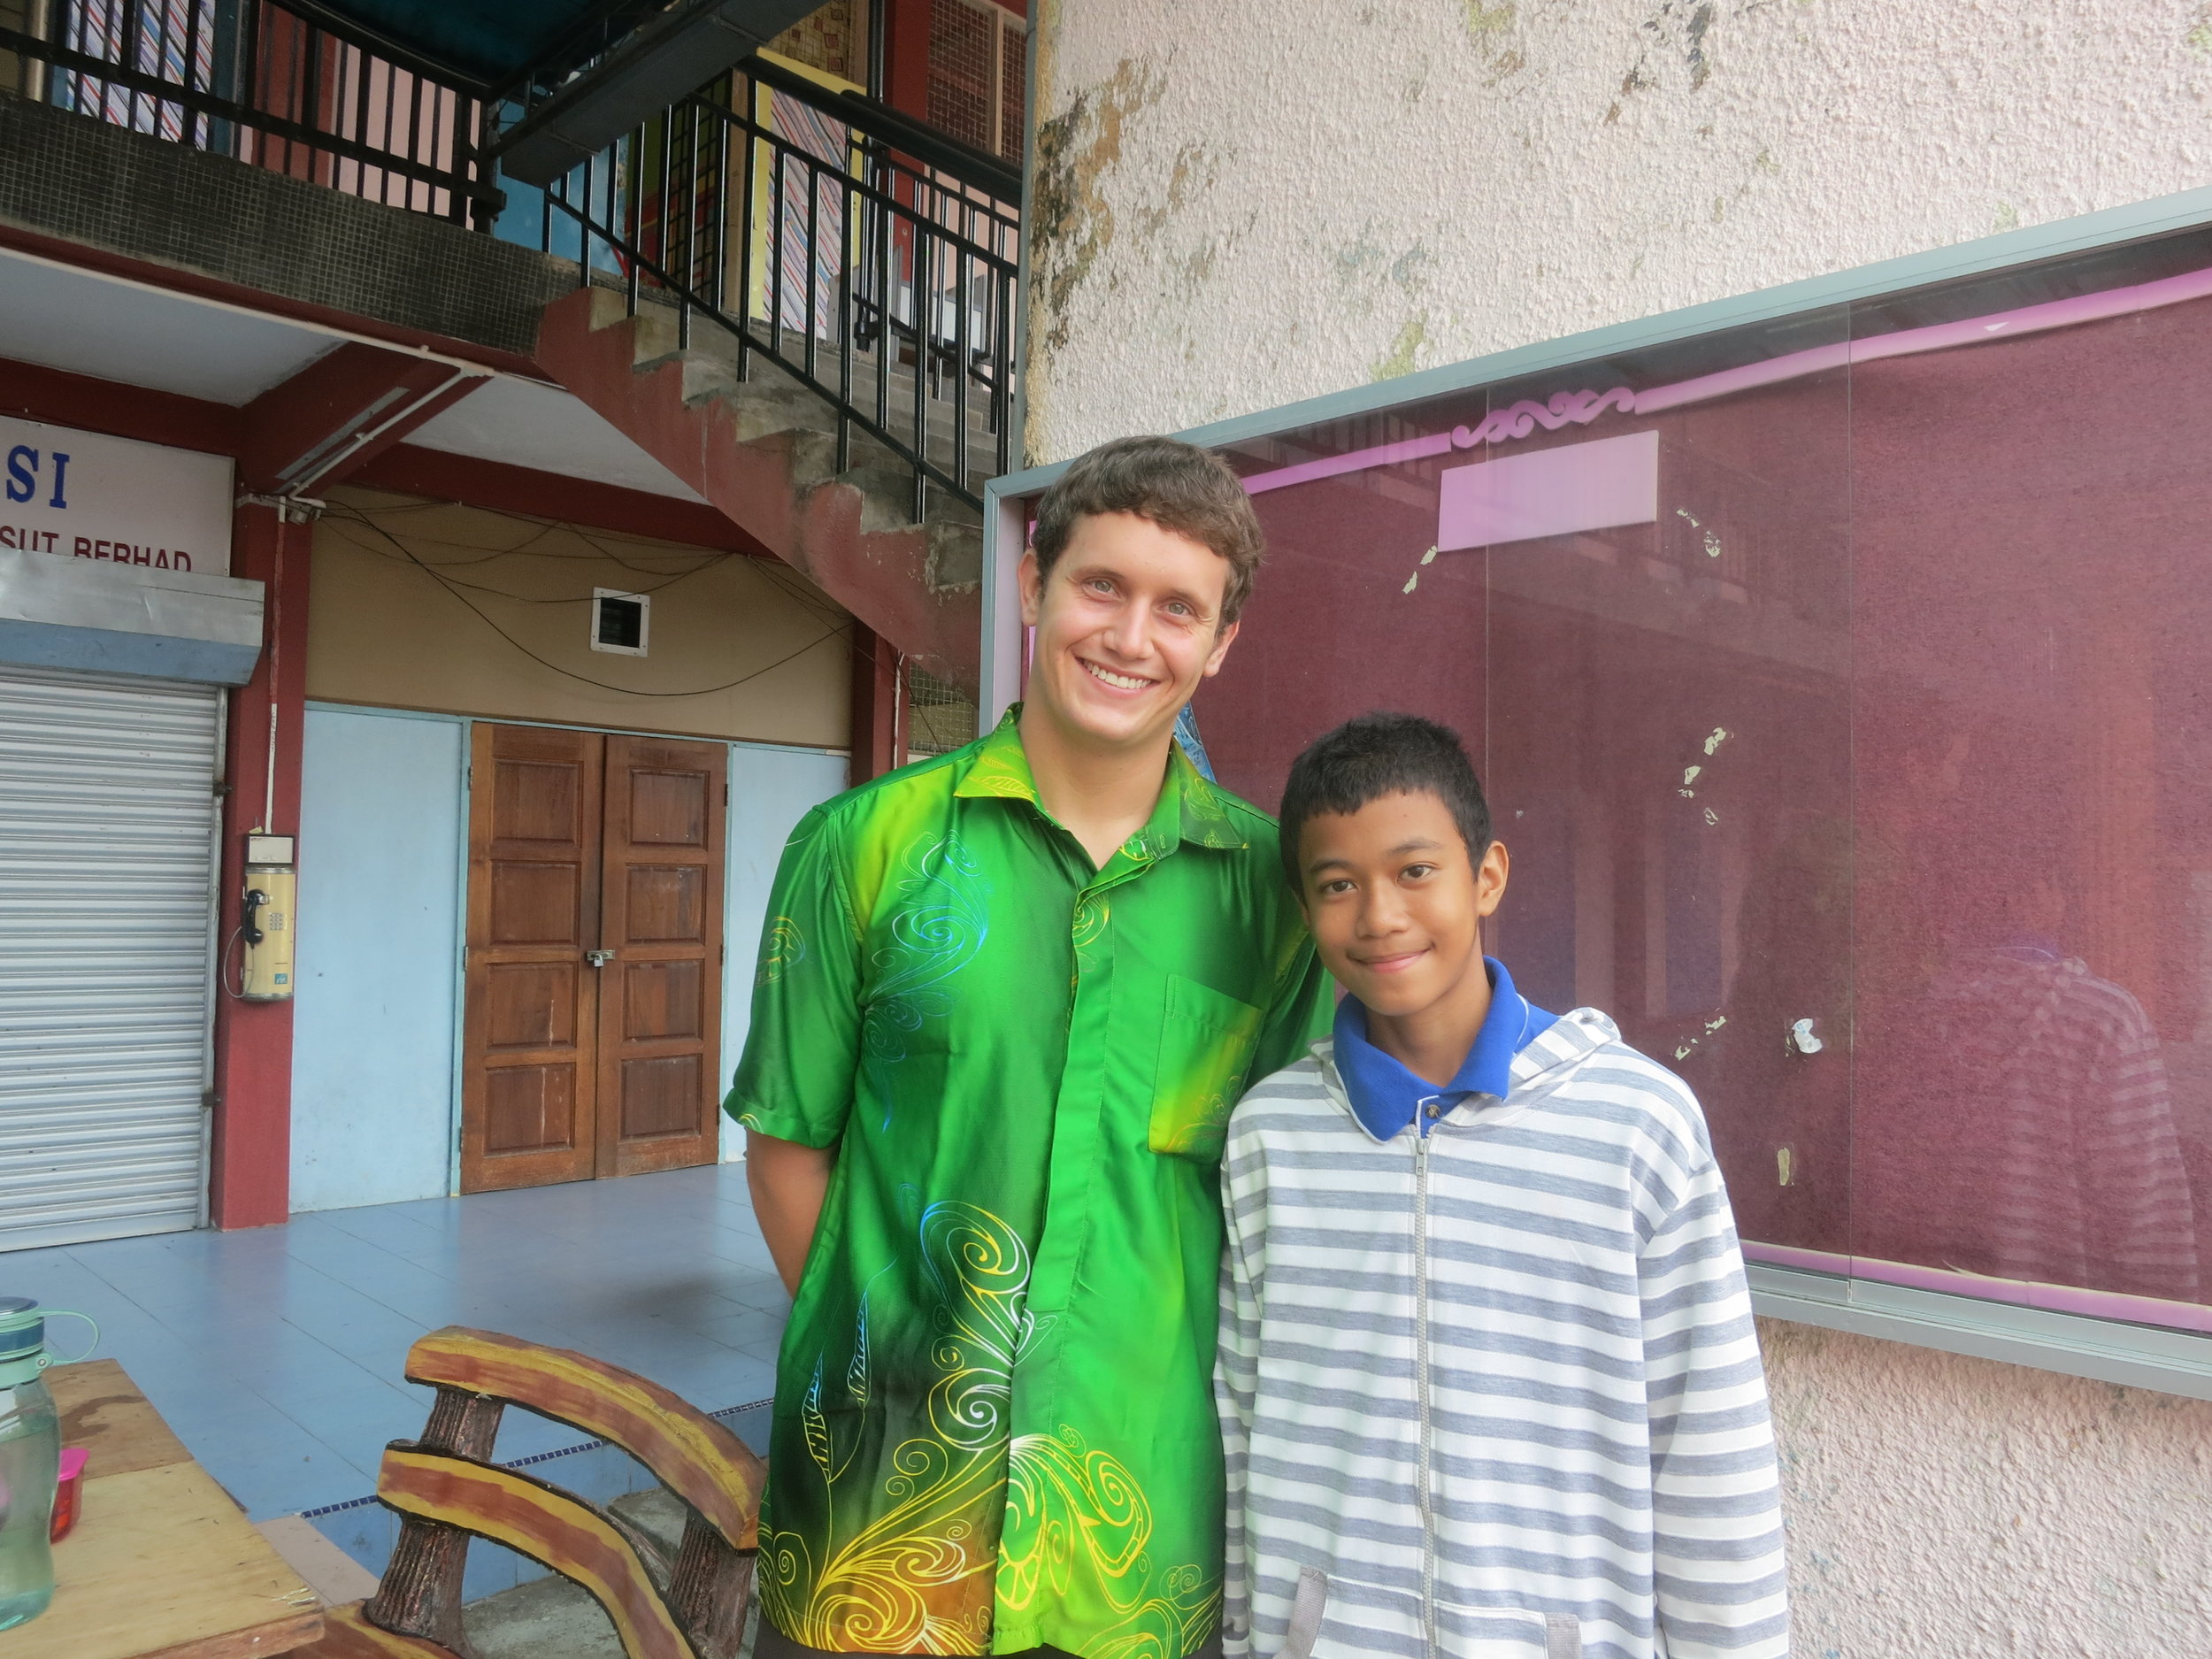 One of my favorite Malaysian students, Muaz.